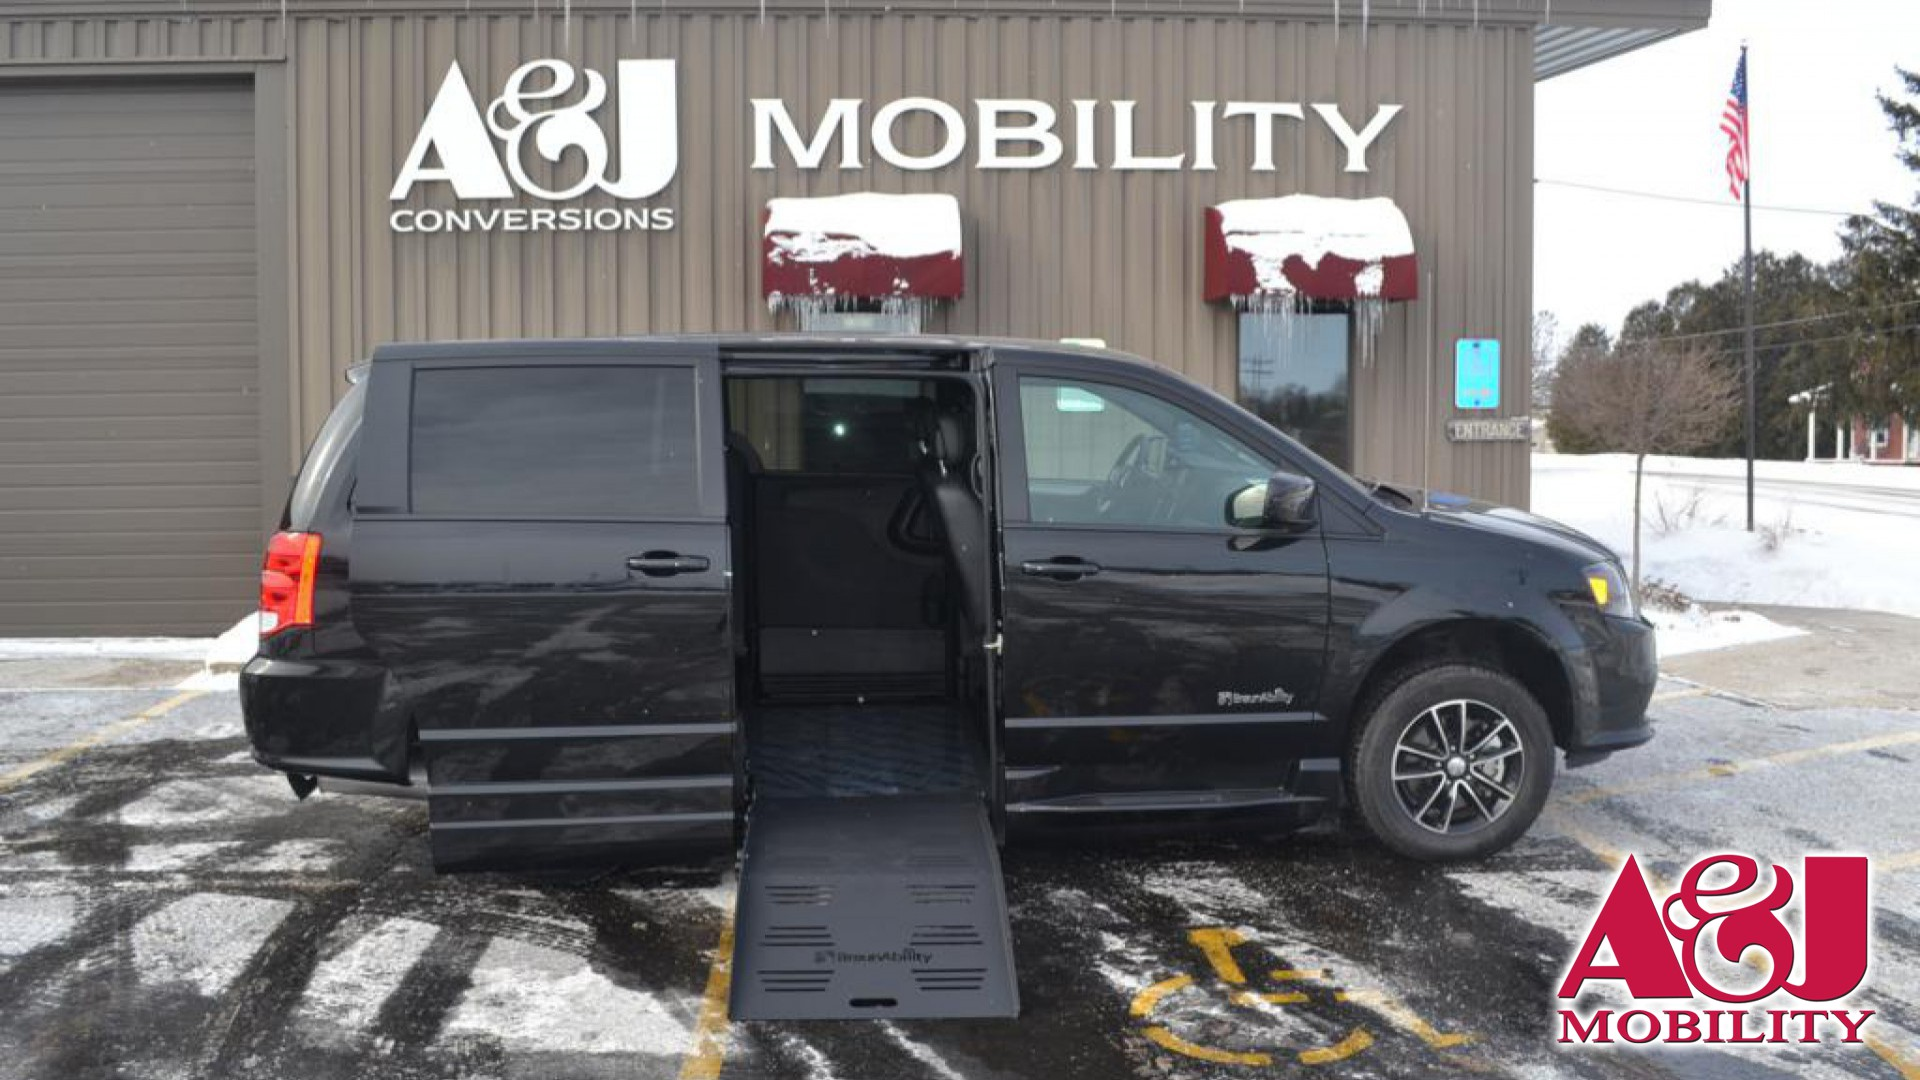 2018 Dodge Grand Caravan | Conversion: BraunAbility Dodge Entervan XT